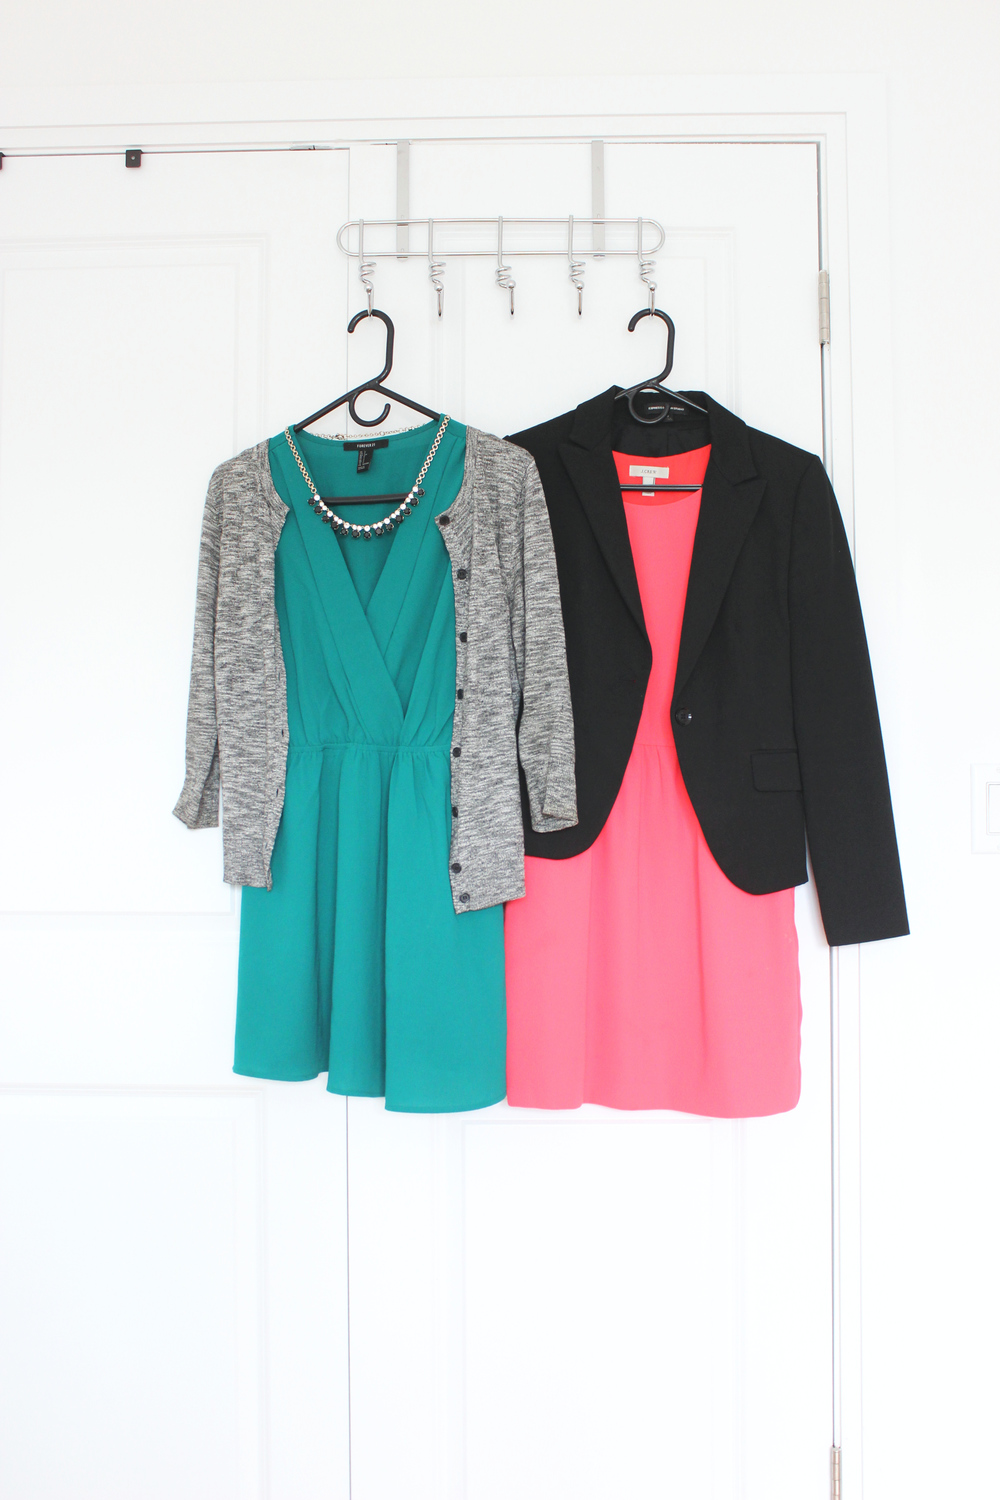 Left to right: 1. Grey cardigan (LOFT, old) 2. Green dress (Forever21, old) 3. Black blazer (Express, old) 4. Pink dress (Jcrew, old)